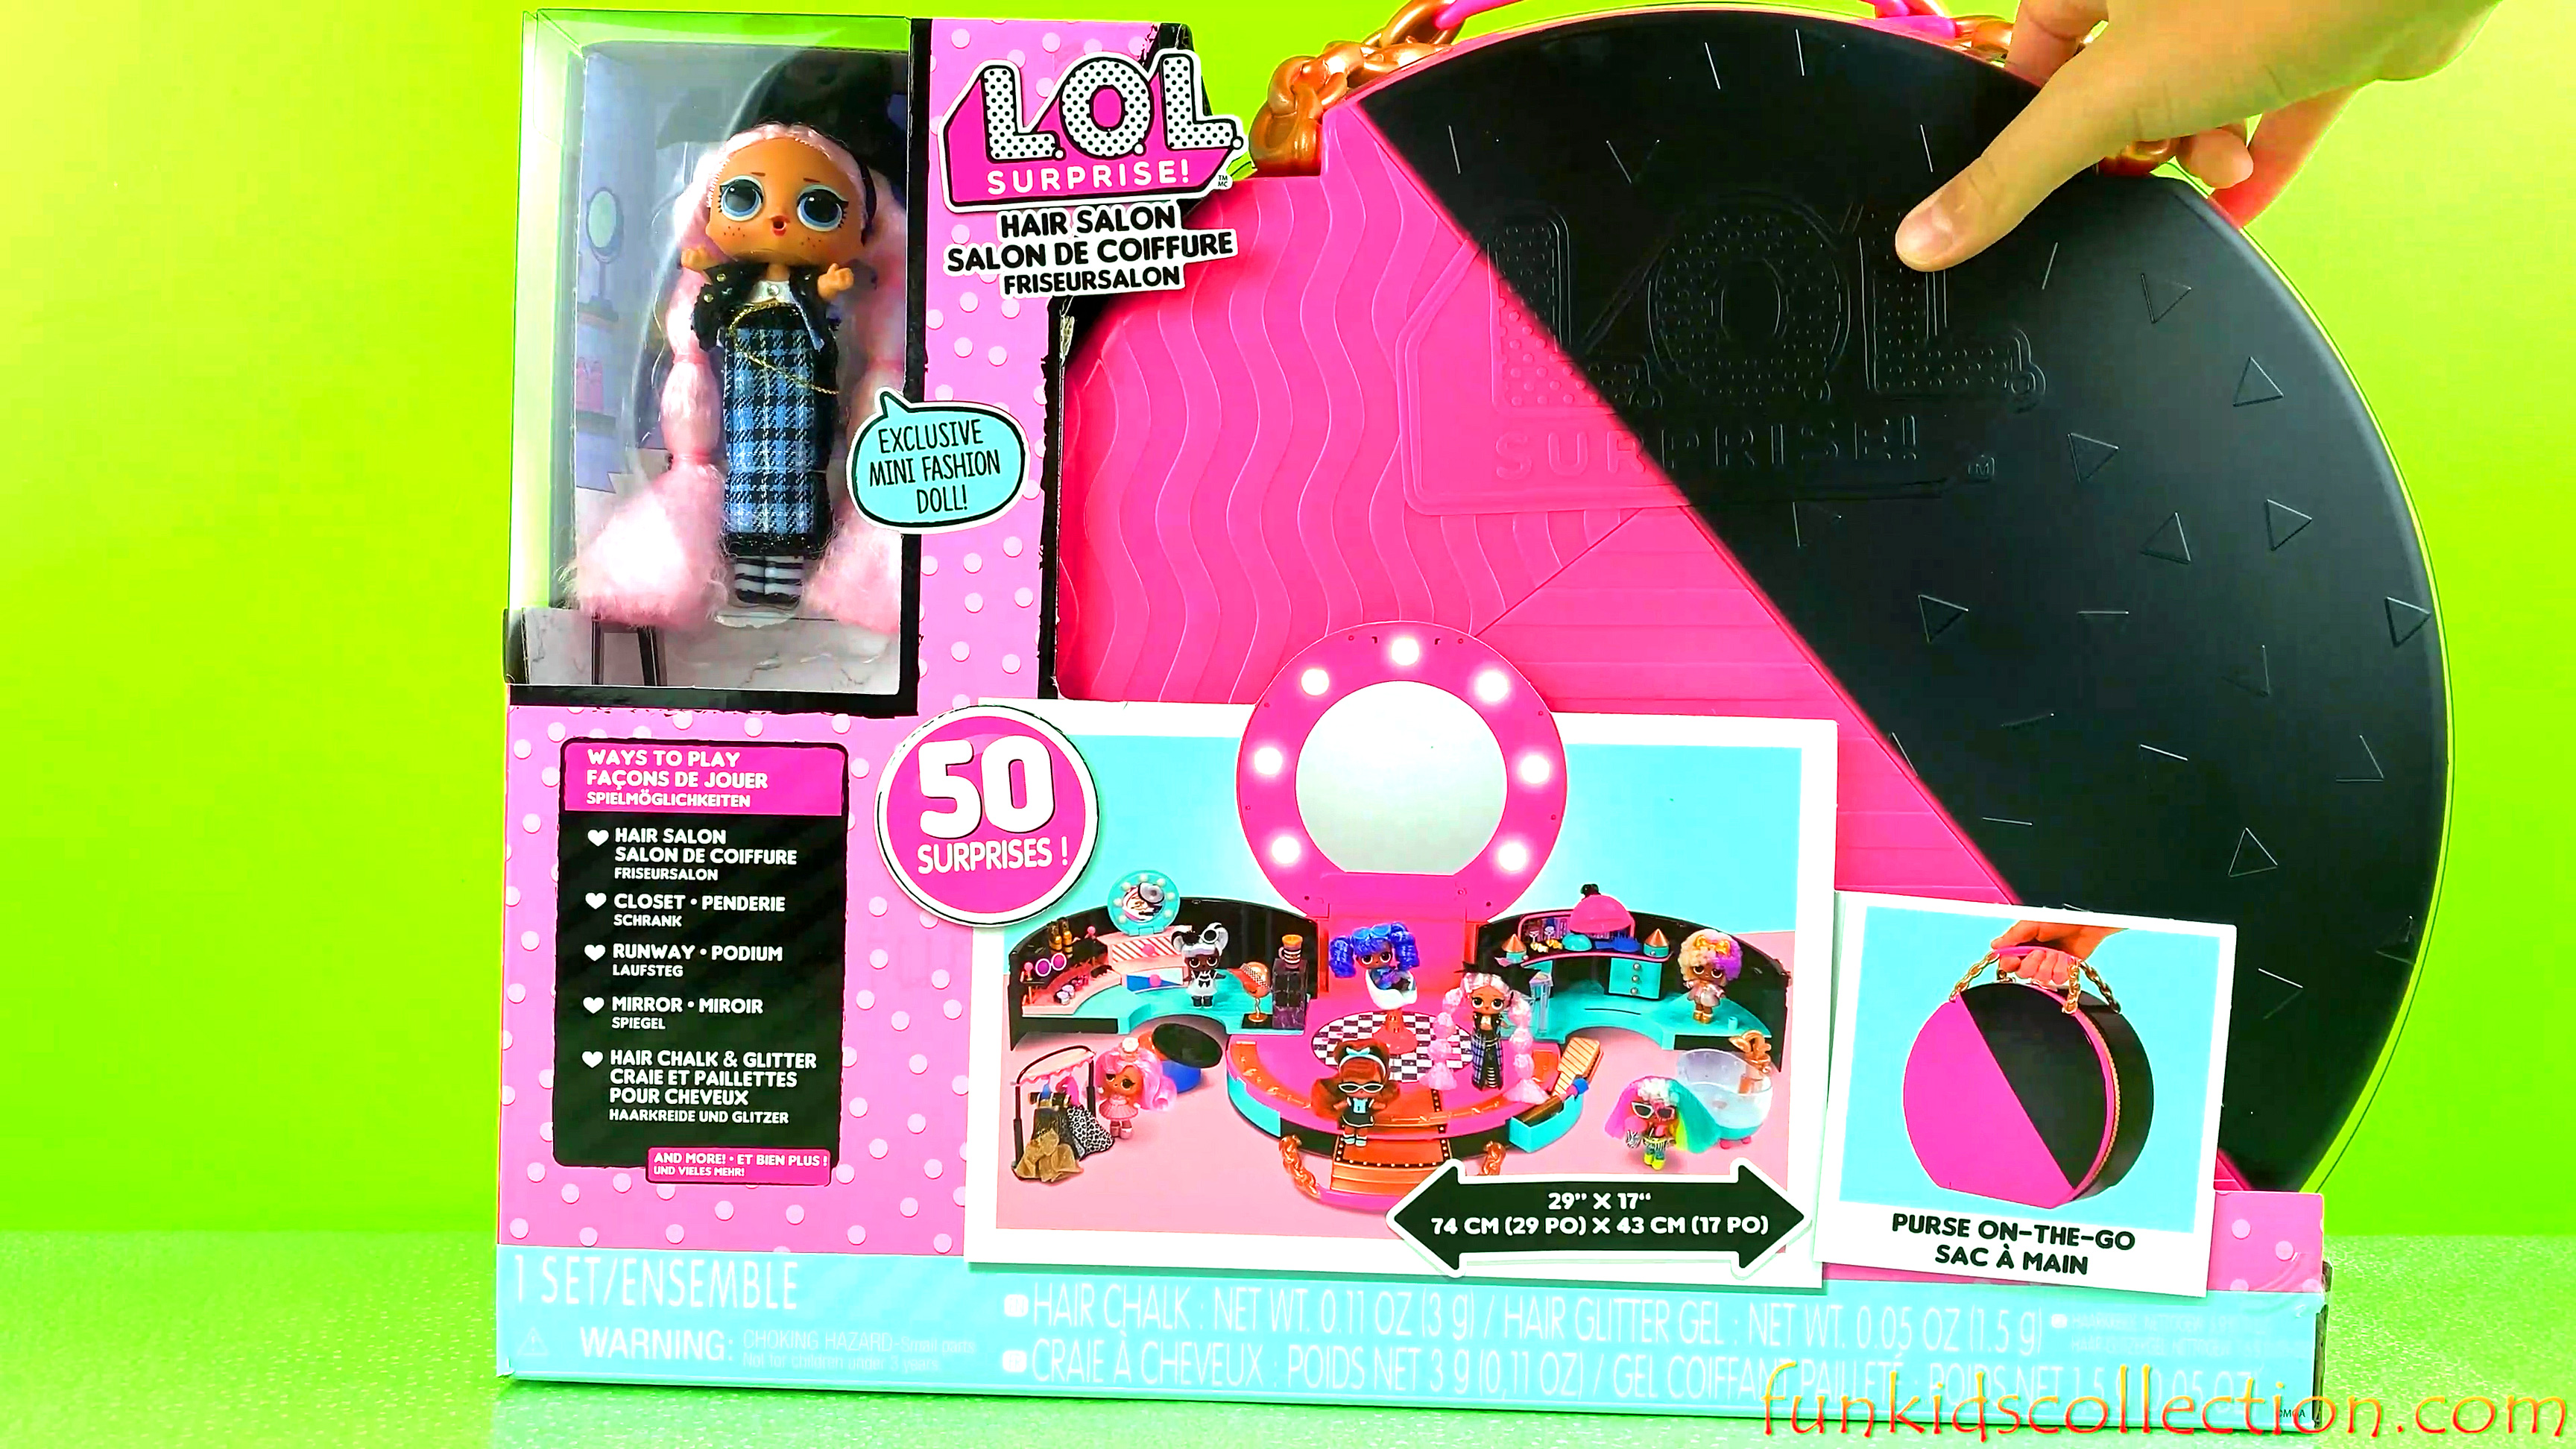 Lol Surprise Hair Salon Playset Unboxing | 50 Lol Surprises and Exclusive Mini Fashion Doll